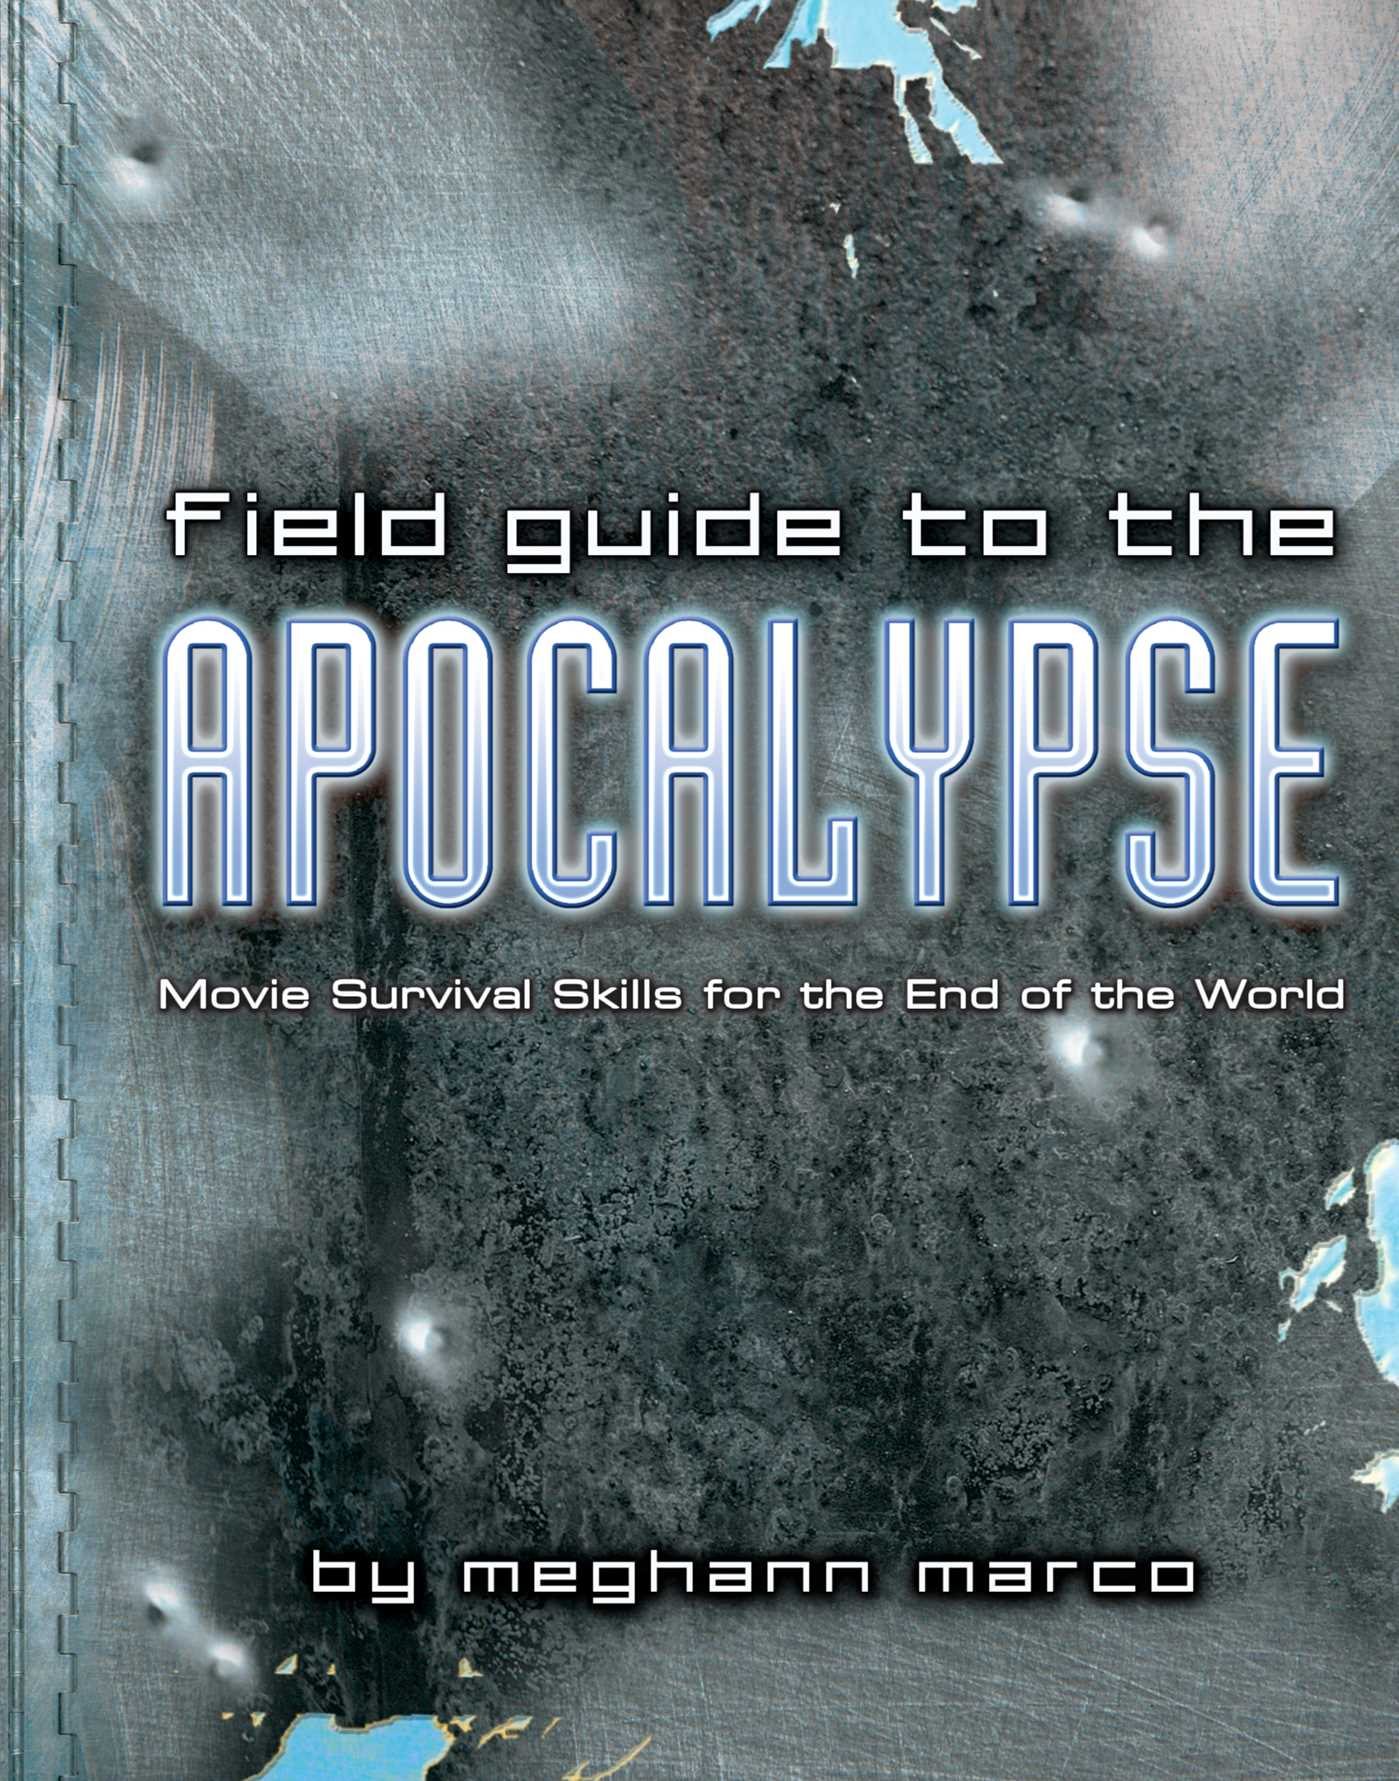 Field-guide-to-the-apocalypse-9781439188071_hr